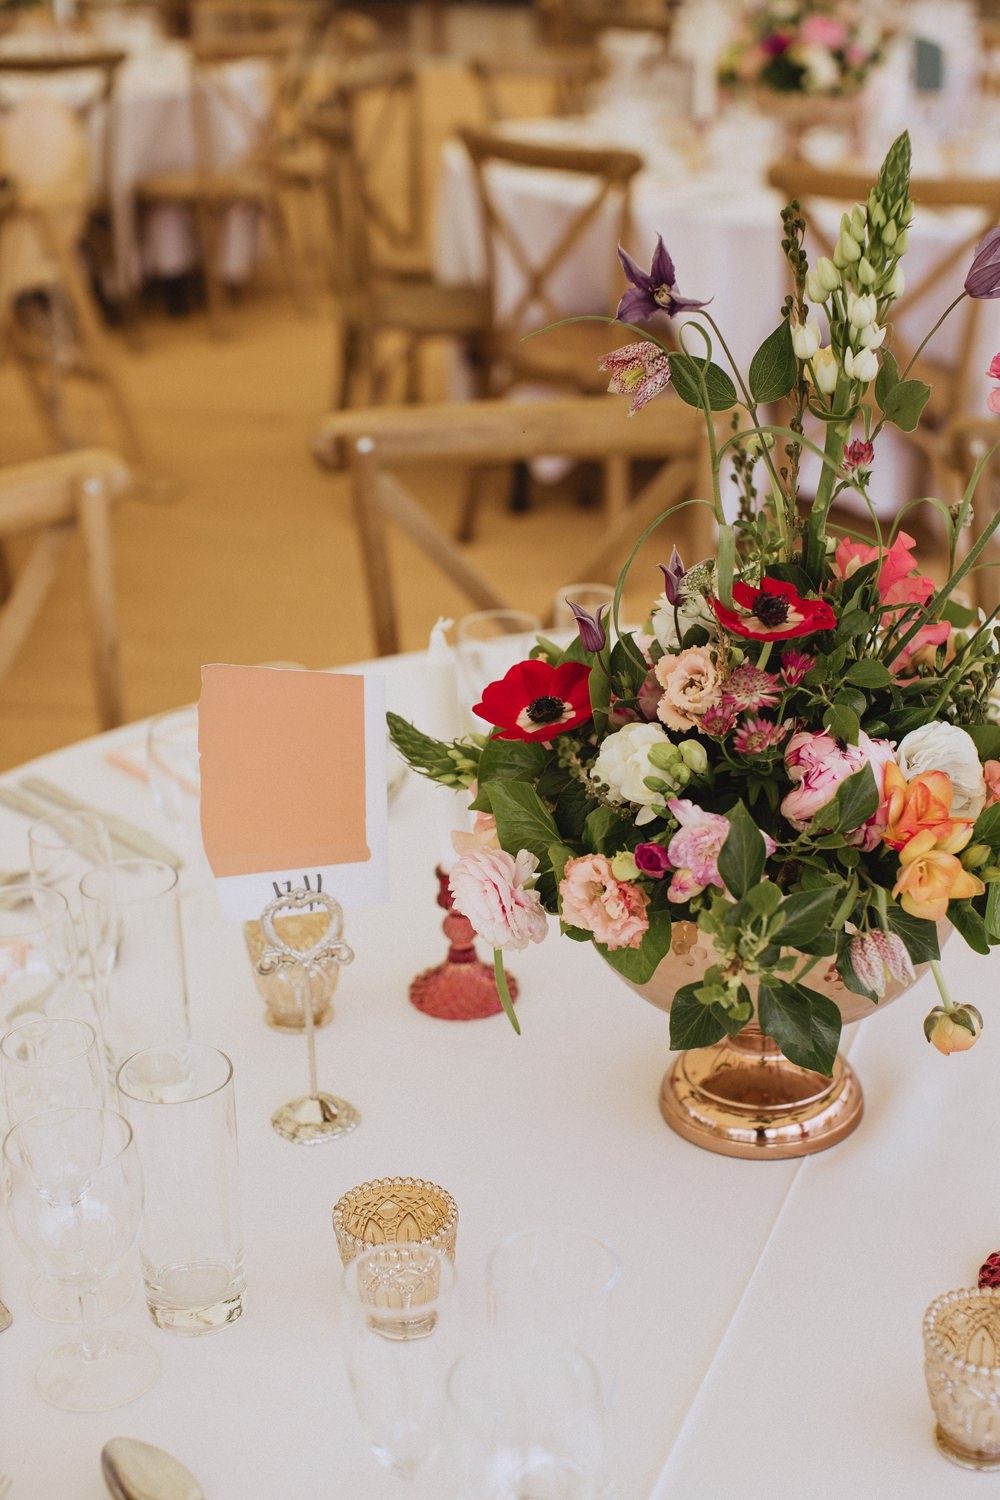 Table Centrepiece Flowers Decor Urn Candle Marquee Wedding Wales Fox & Bear Photography